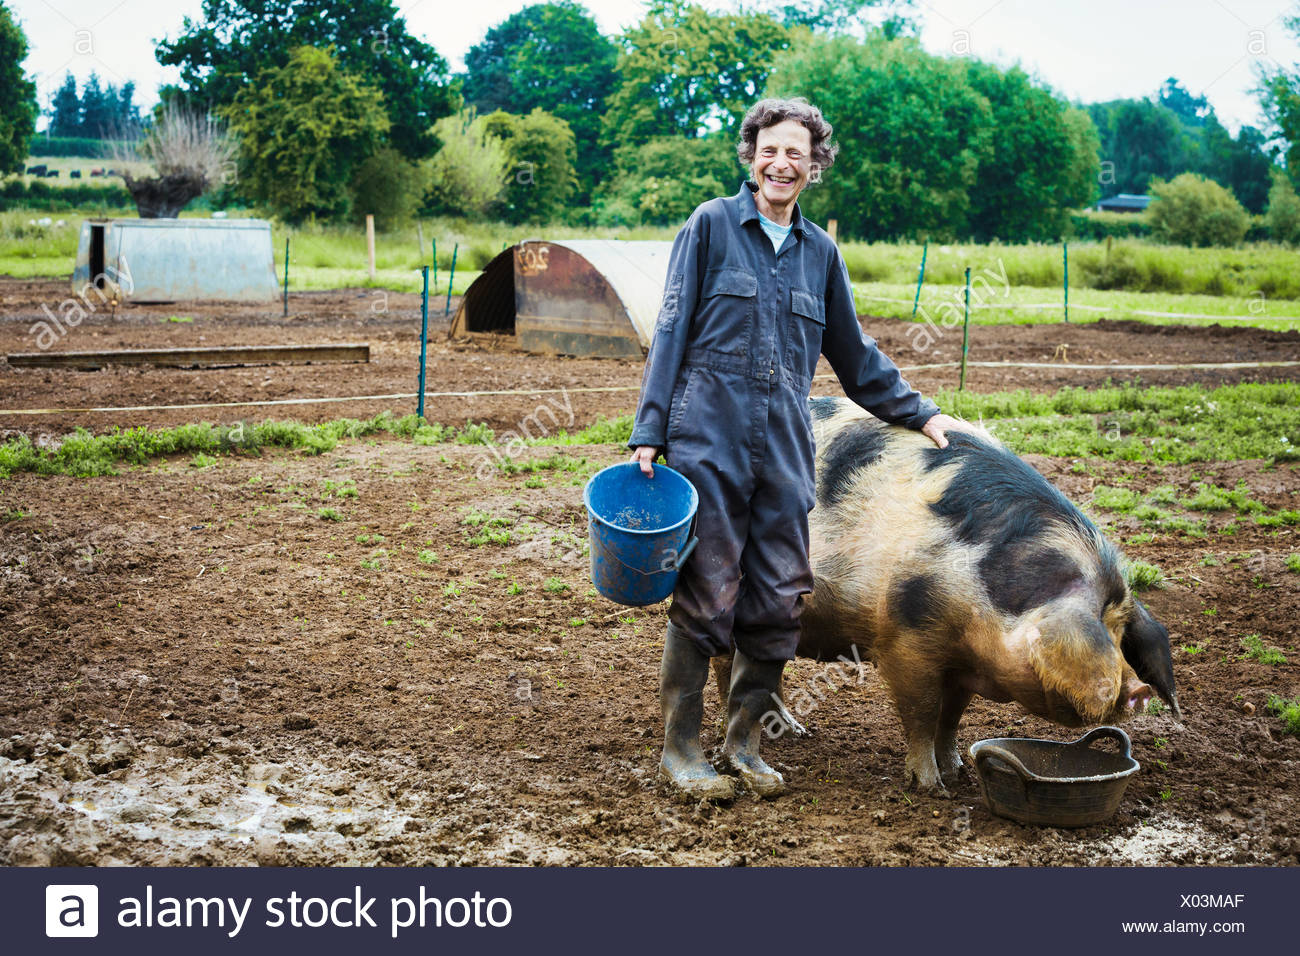 A woman stood by a large pig holding a bucket. - Stock Image